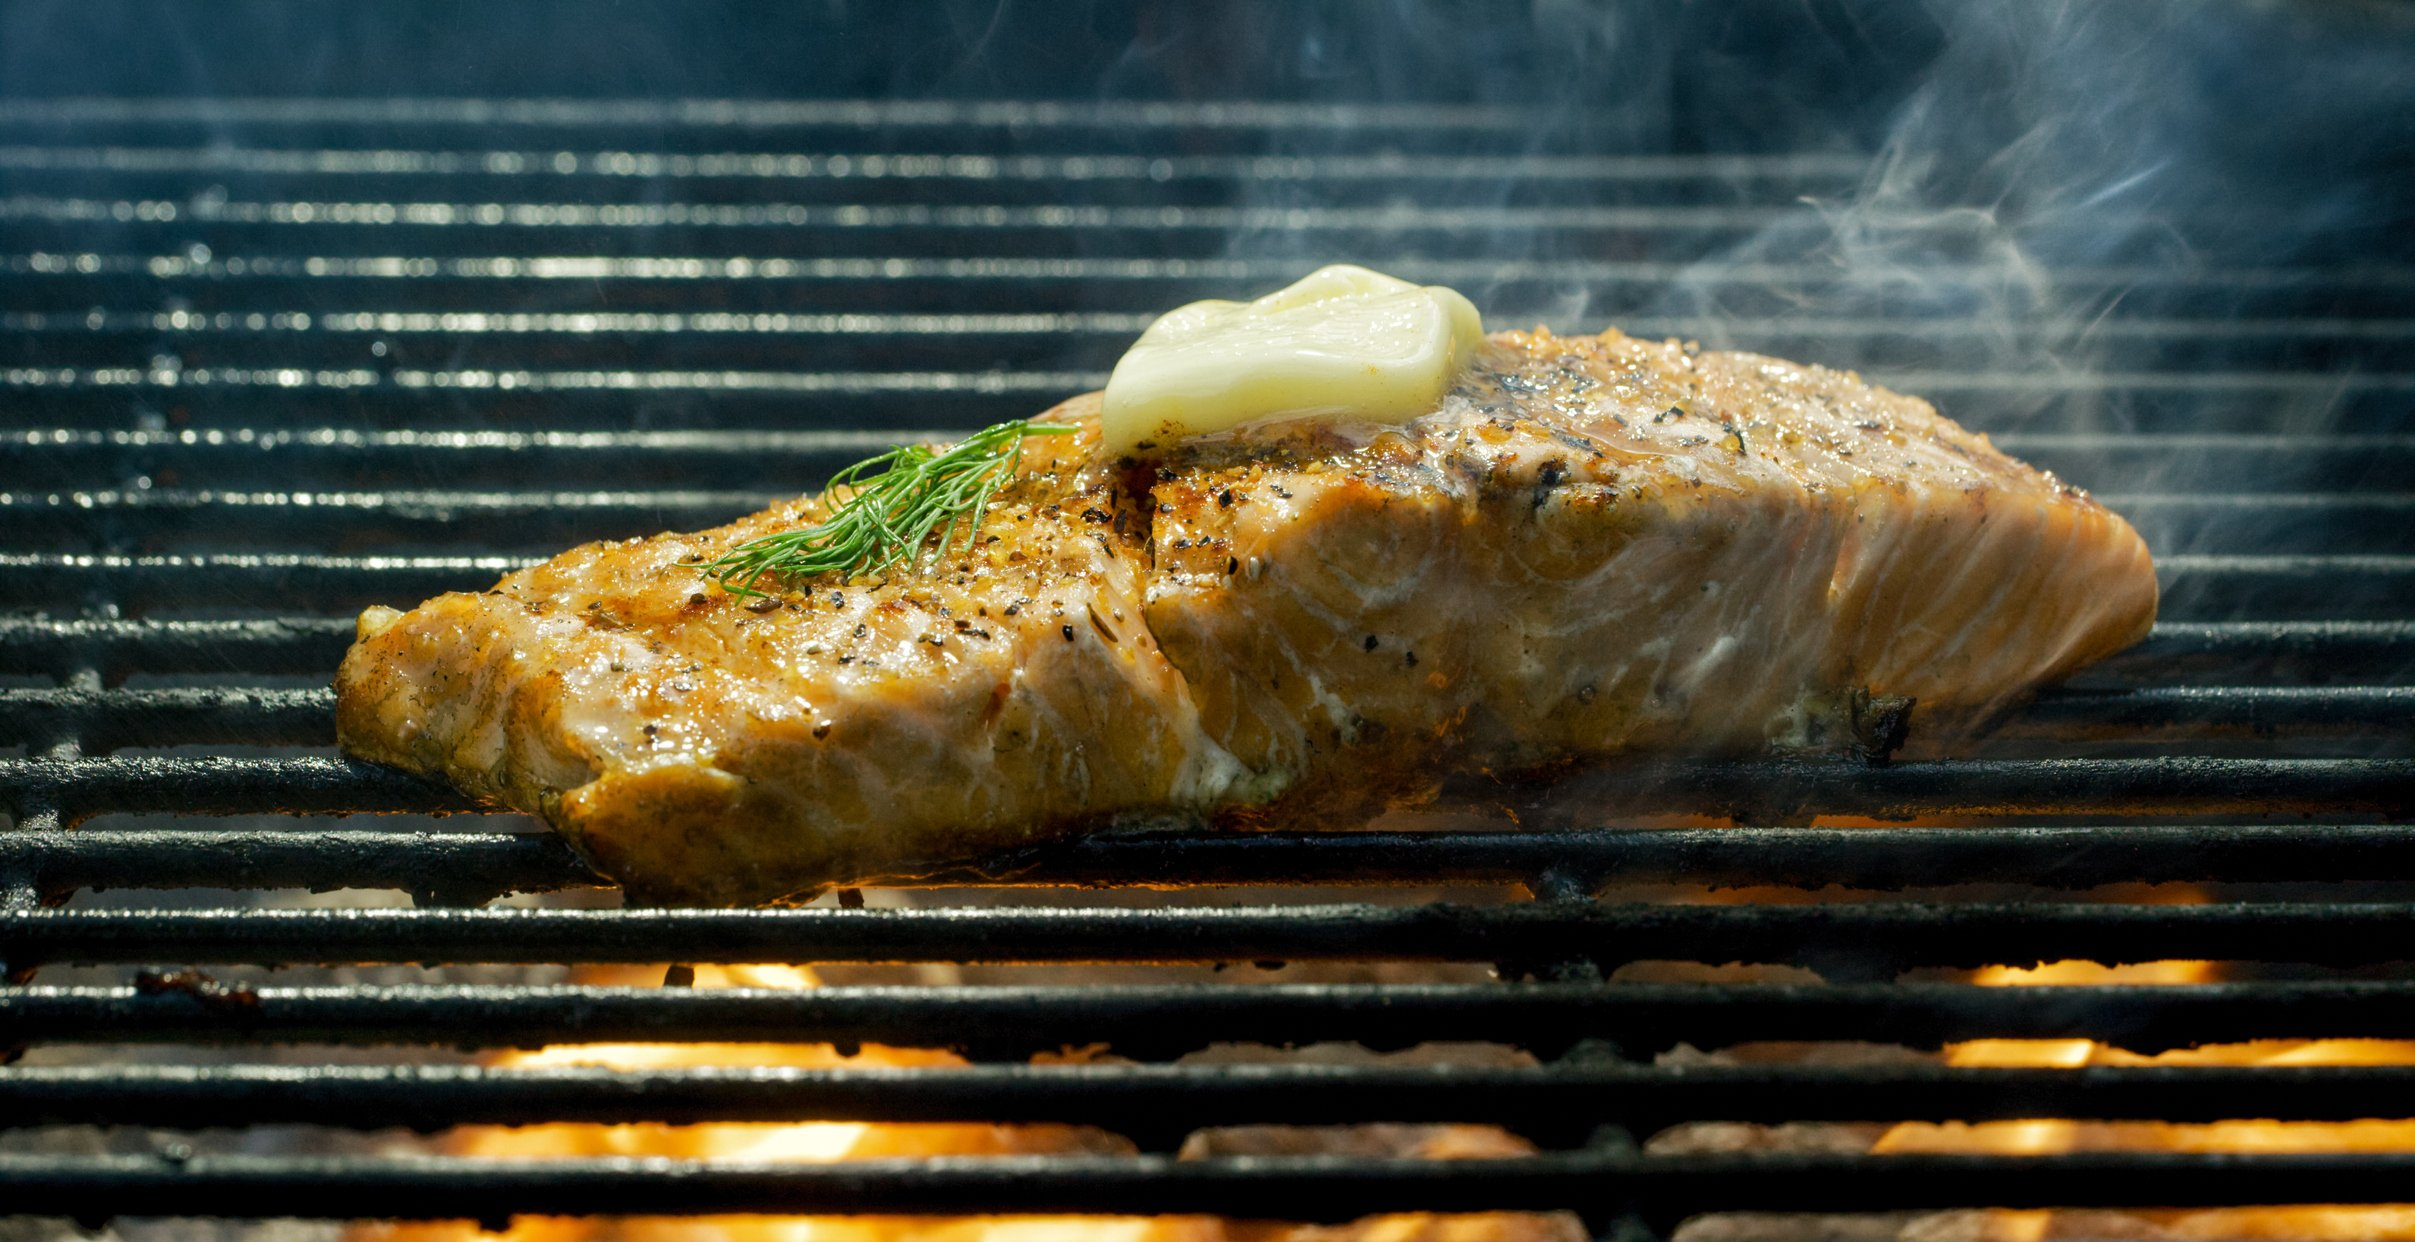 A Seasoned Salmon Steak Fillet Cooks on a Flaming Barbecue Grill